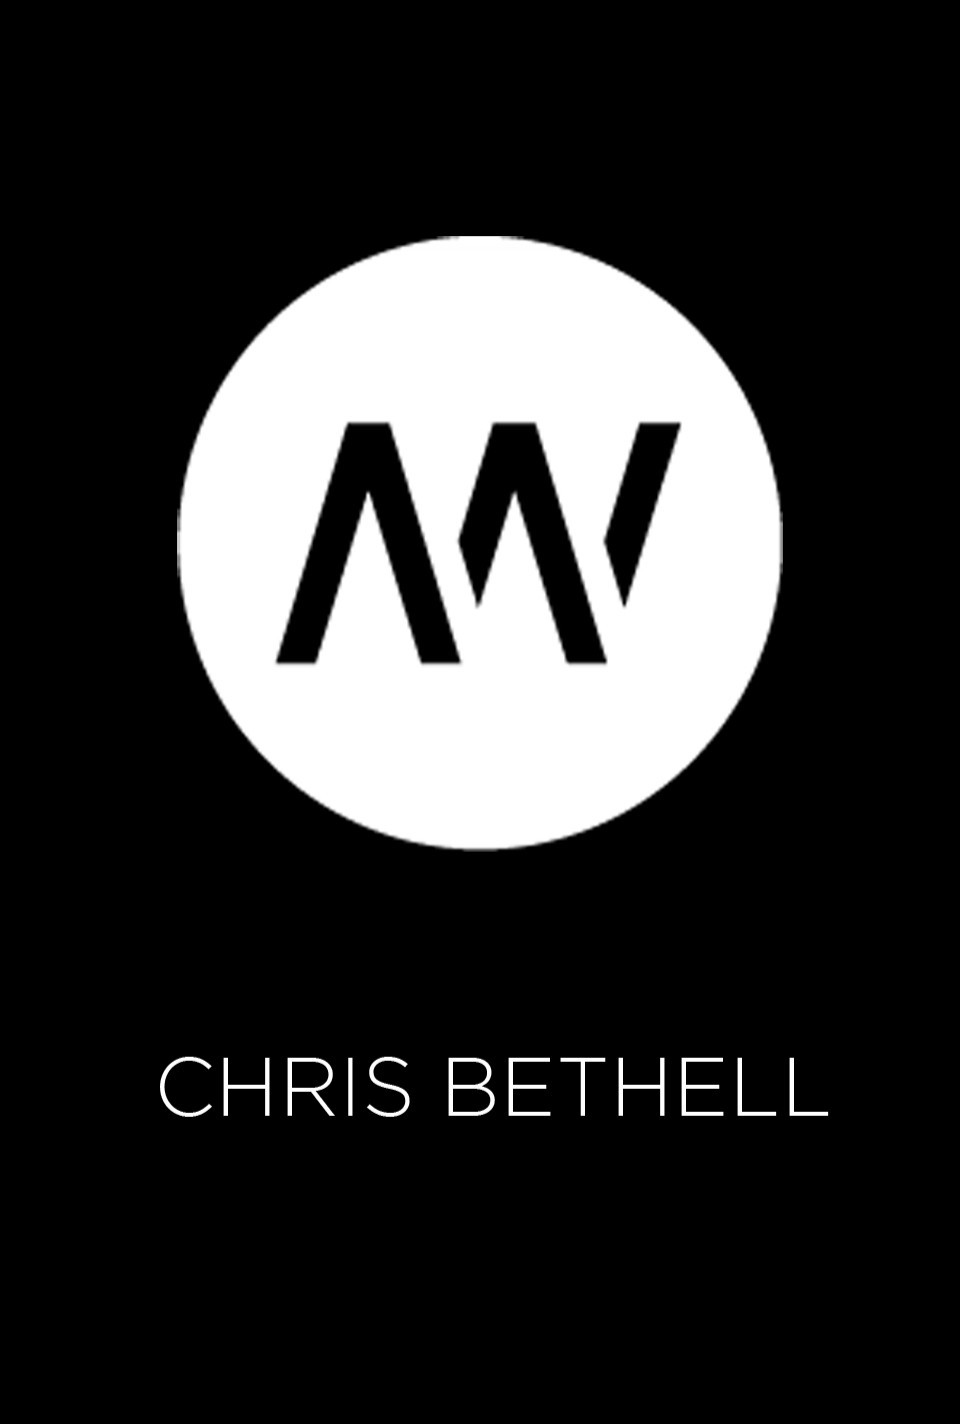 Chris Bethell